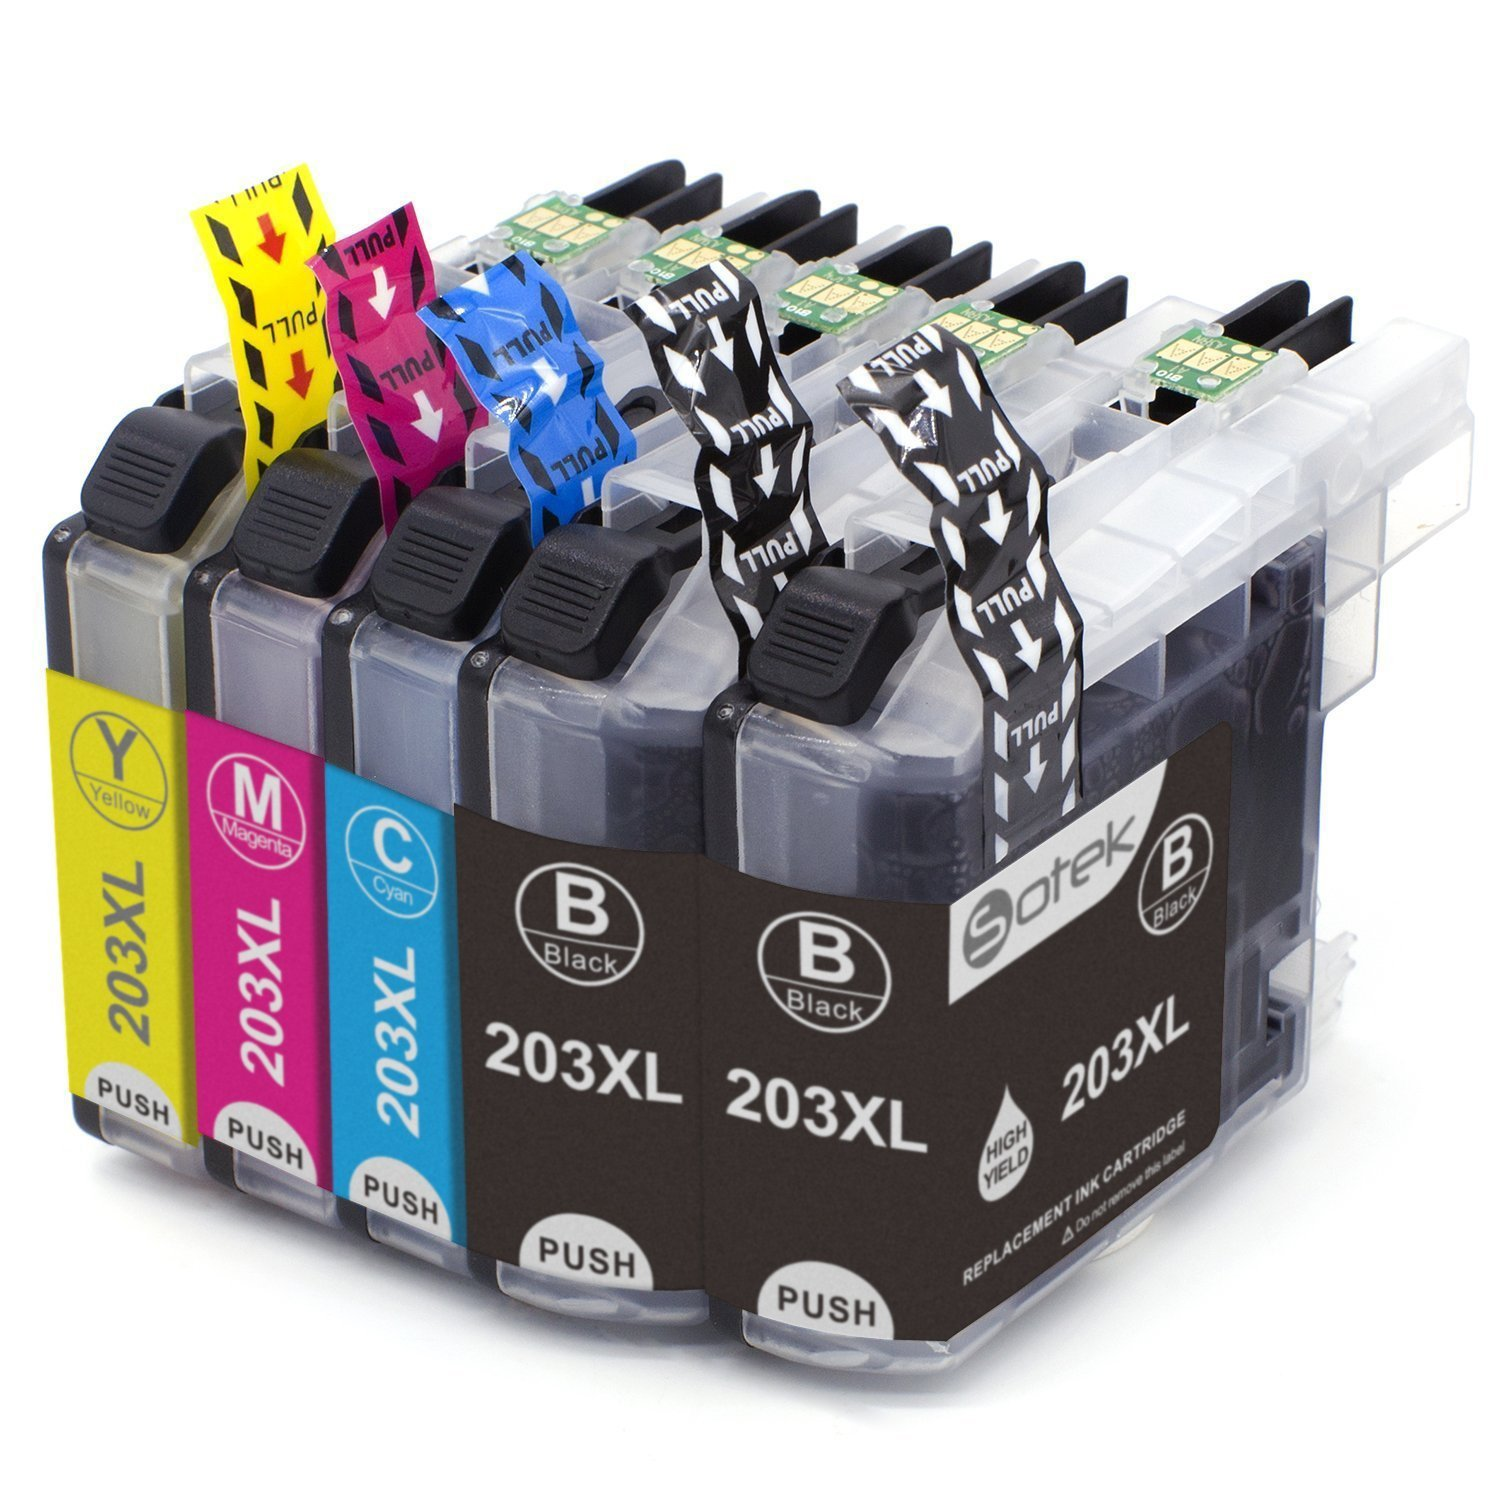 LC203XL LC201 Ink Cartridges 5 Pack, Work with MFC J480DW J680DW J880DW J460DW J485DW J885DW J5520DW J4320DW J4420DW J4620DW J5620 J5720DW Printers 5 Pack (2 Black, 1 Cyan, 1 Magenta,1 Yellow)